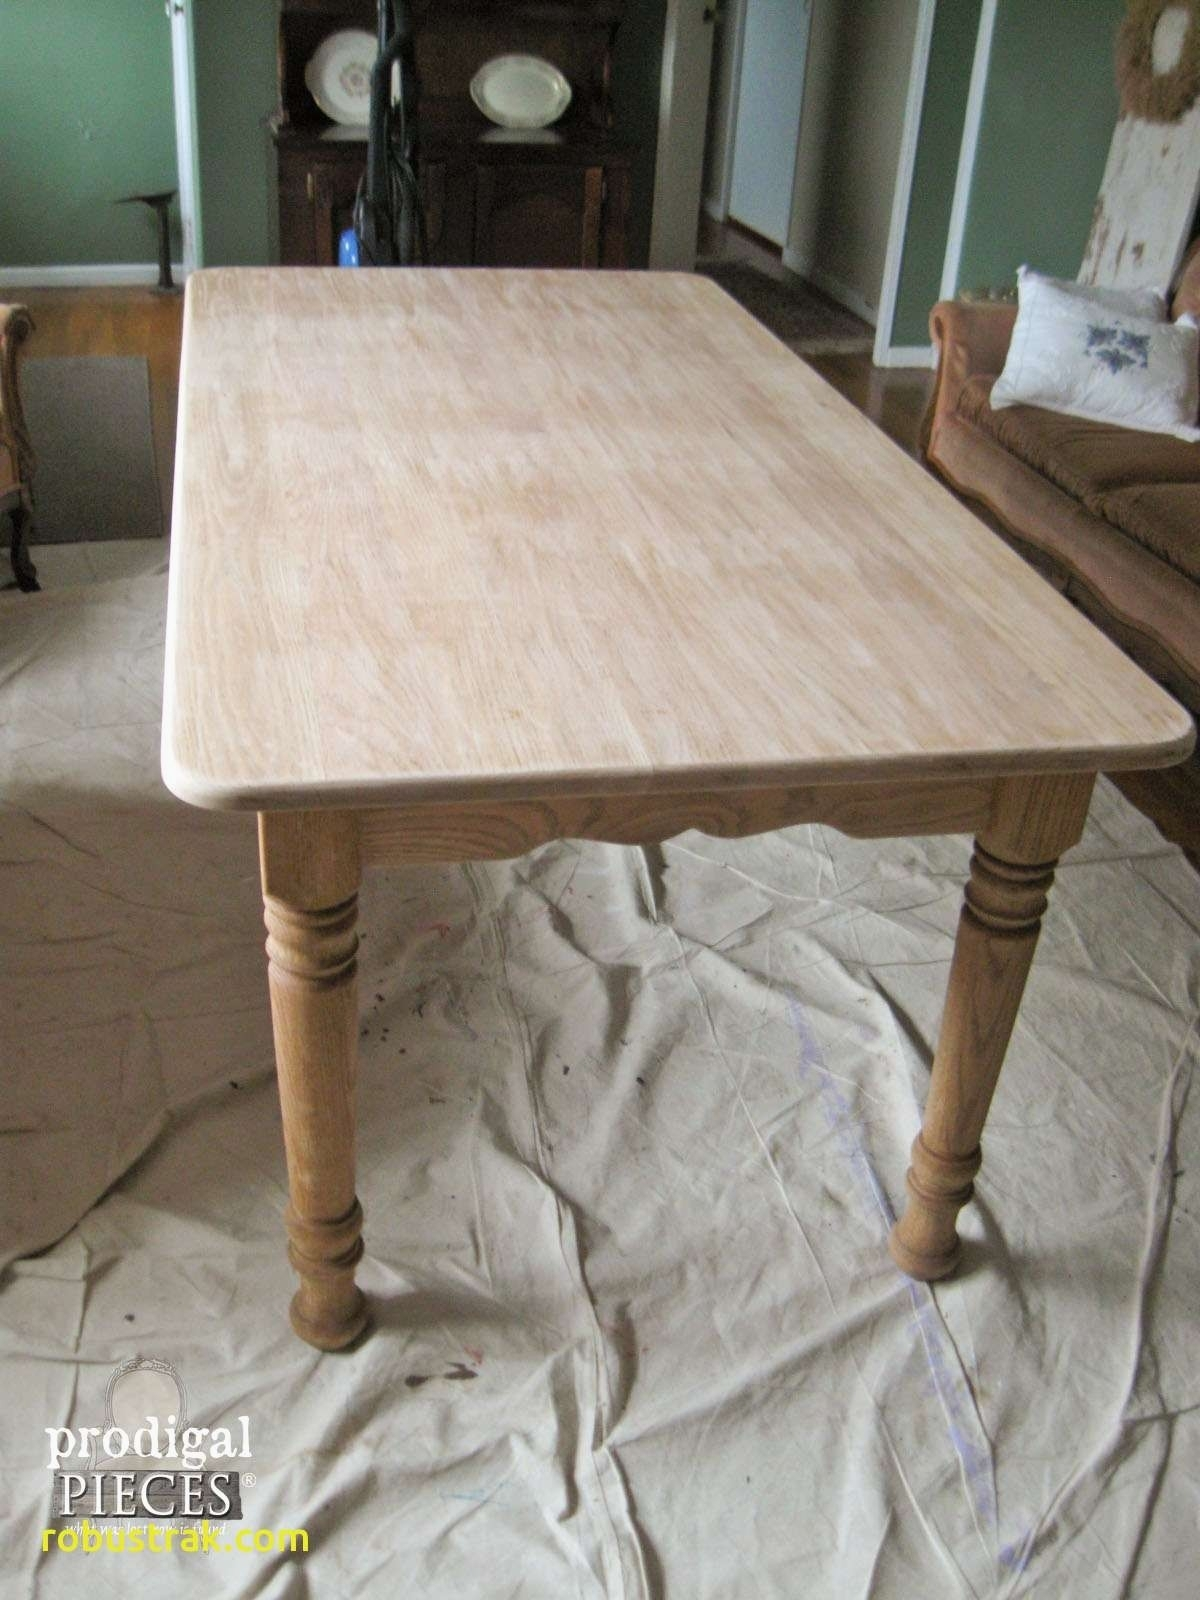 44 Fabulous Lime Wash Coffee Table - Stampler with Limewash Coffee Tables (Image 1 of 30)